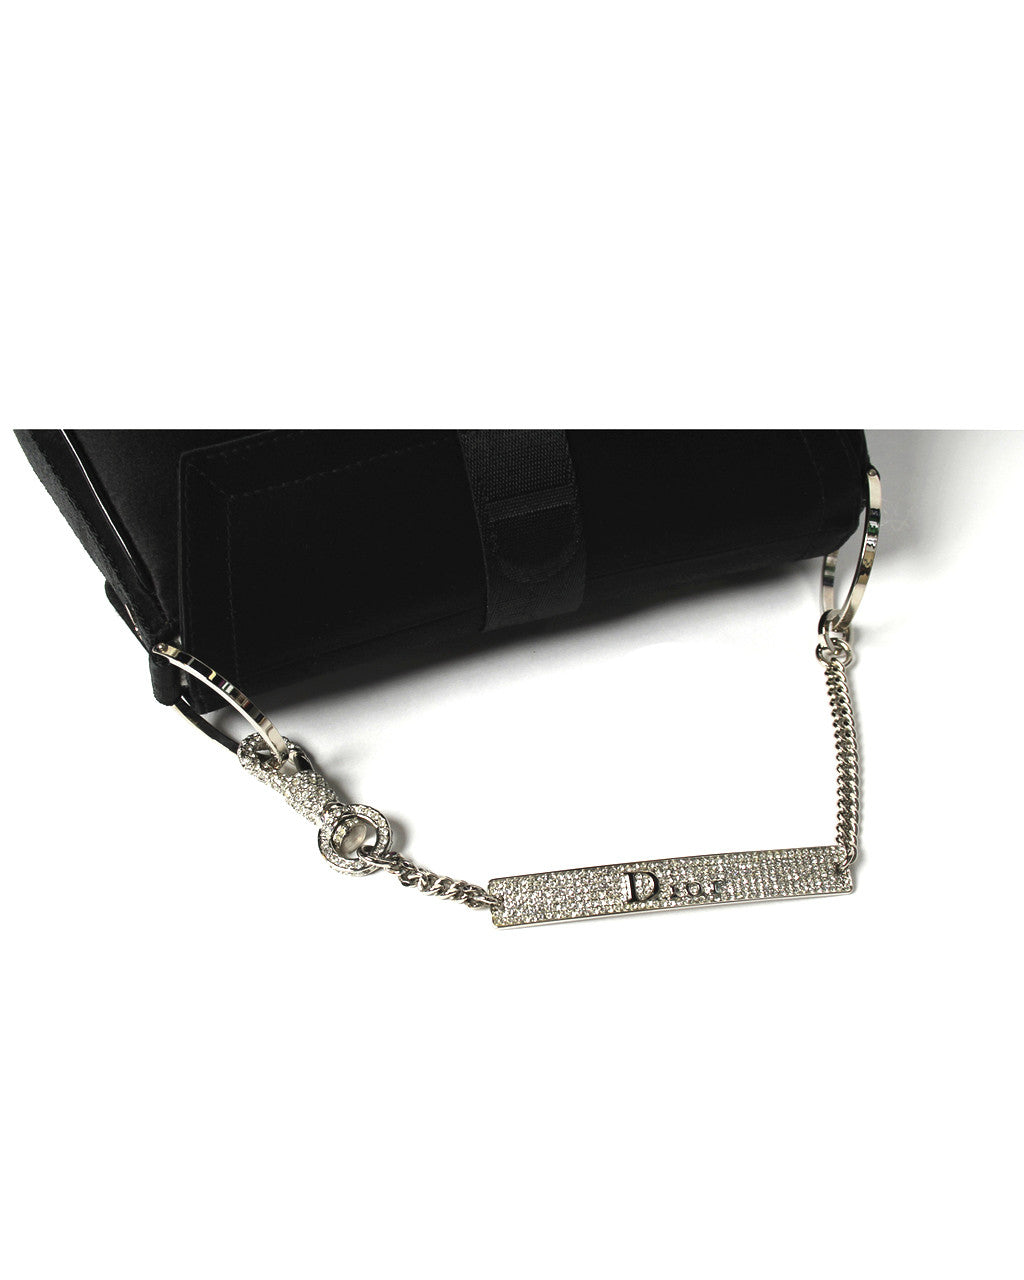 Christian Dior Black Satin Evening Bag with Rhinestone Pave Handle